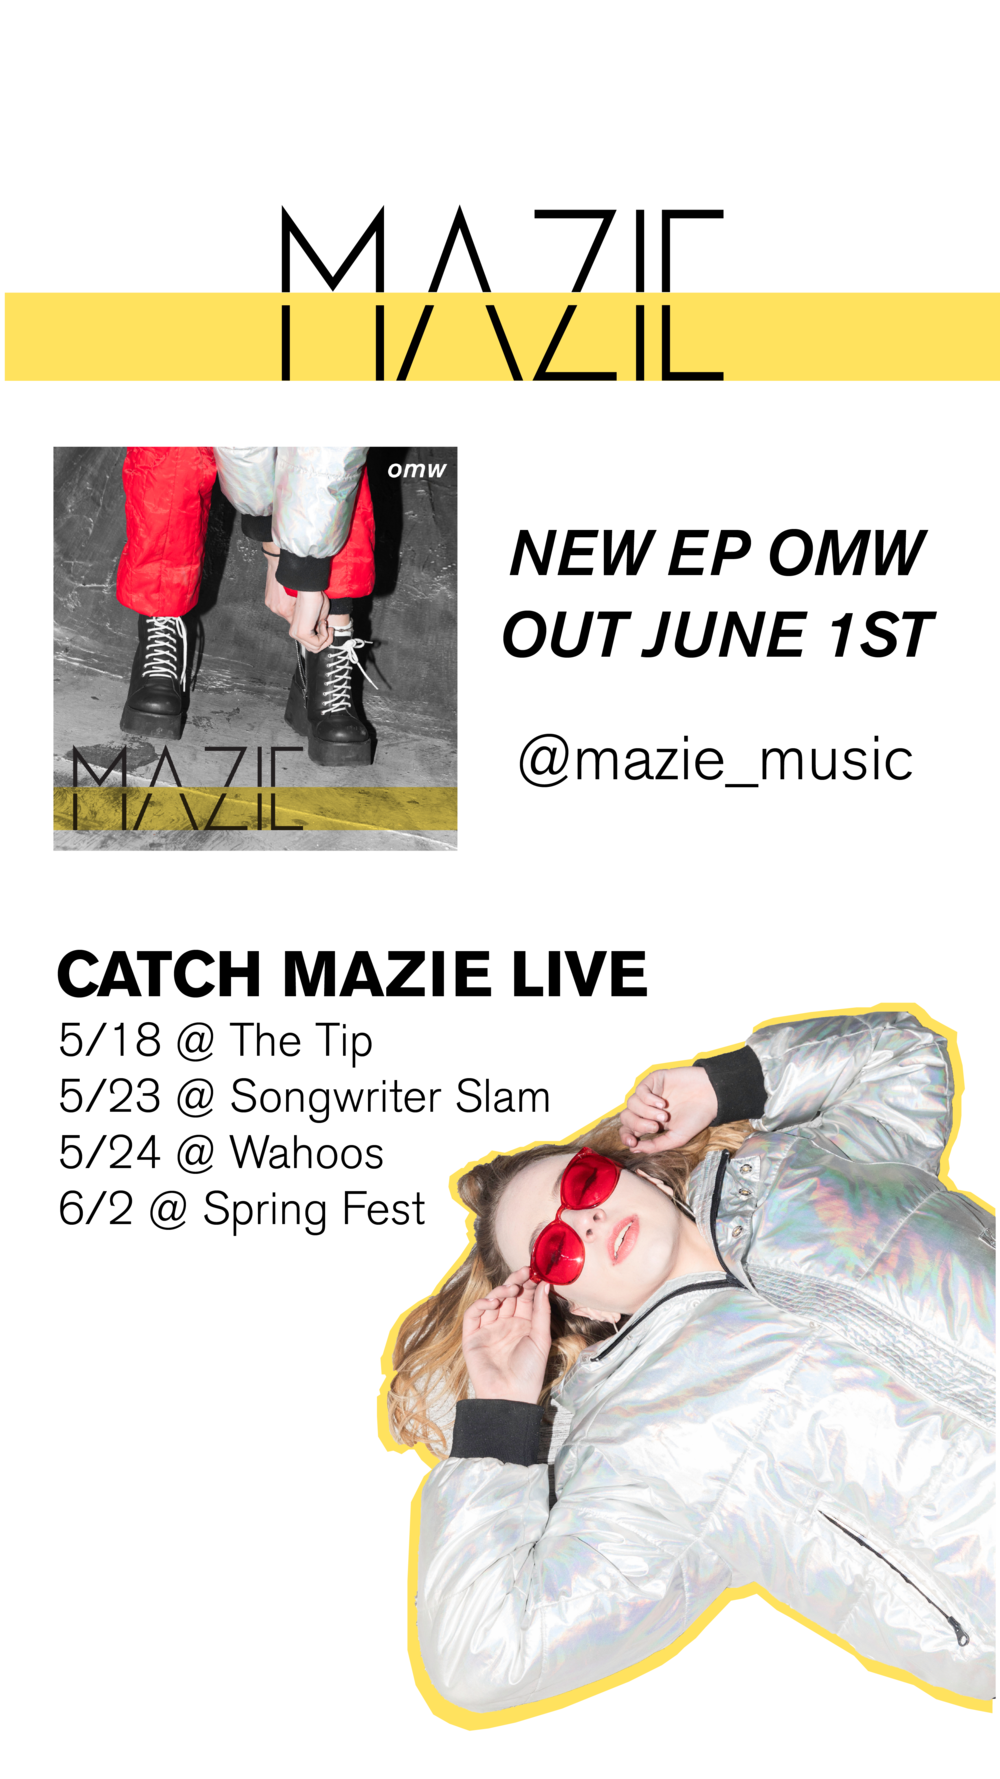 Instagram story for Mad Dragon Music Group artist Mazie EP release and shows